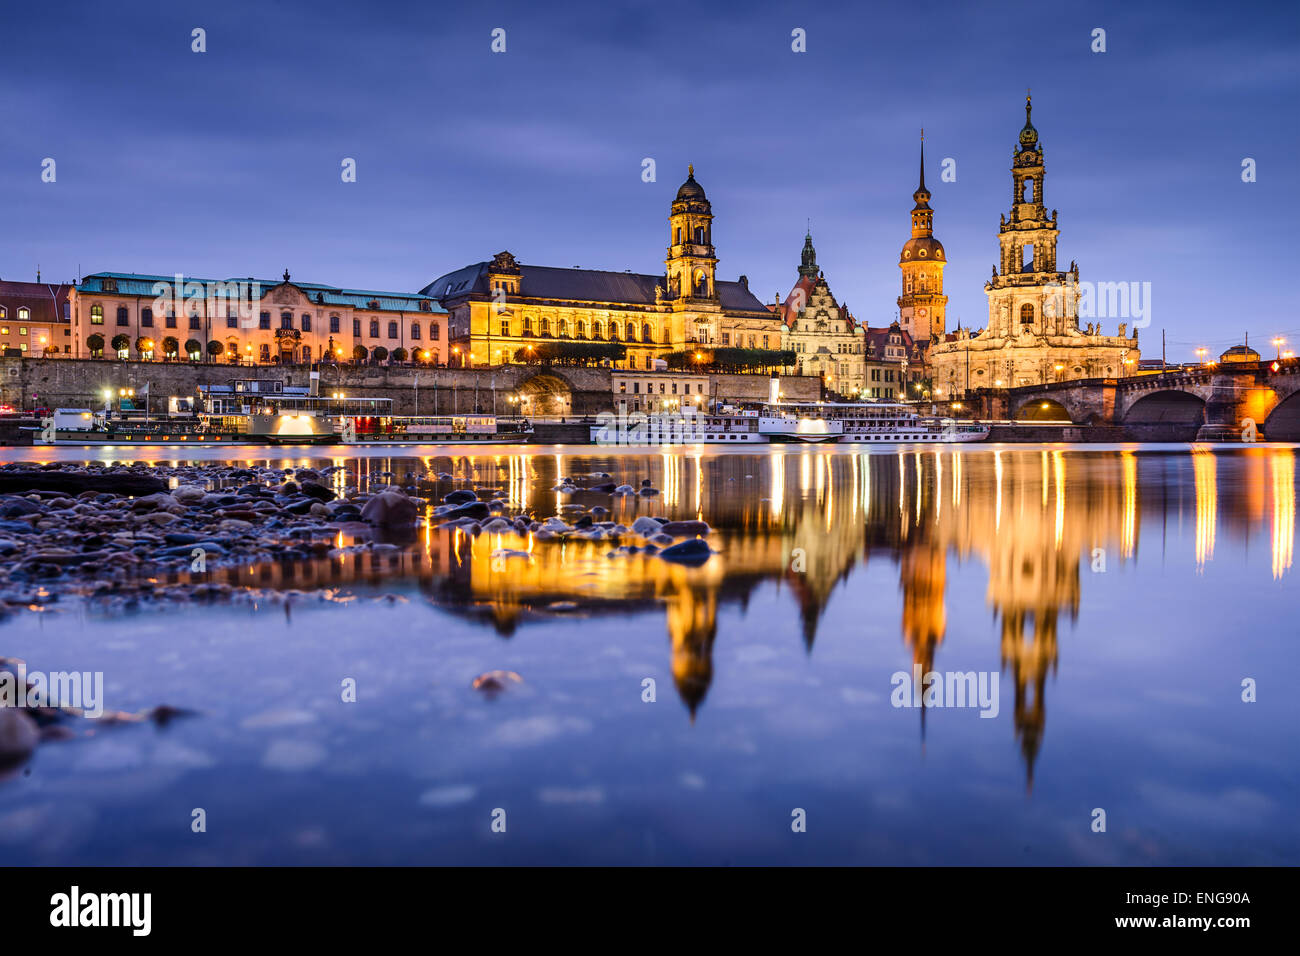 Dresden, Germany old town skyline on the Elbe River. - Stock Image